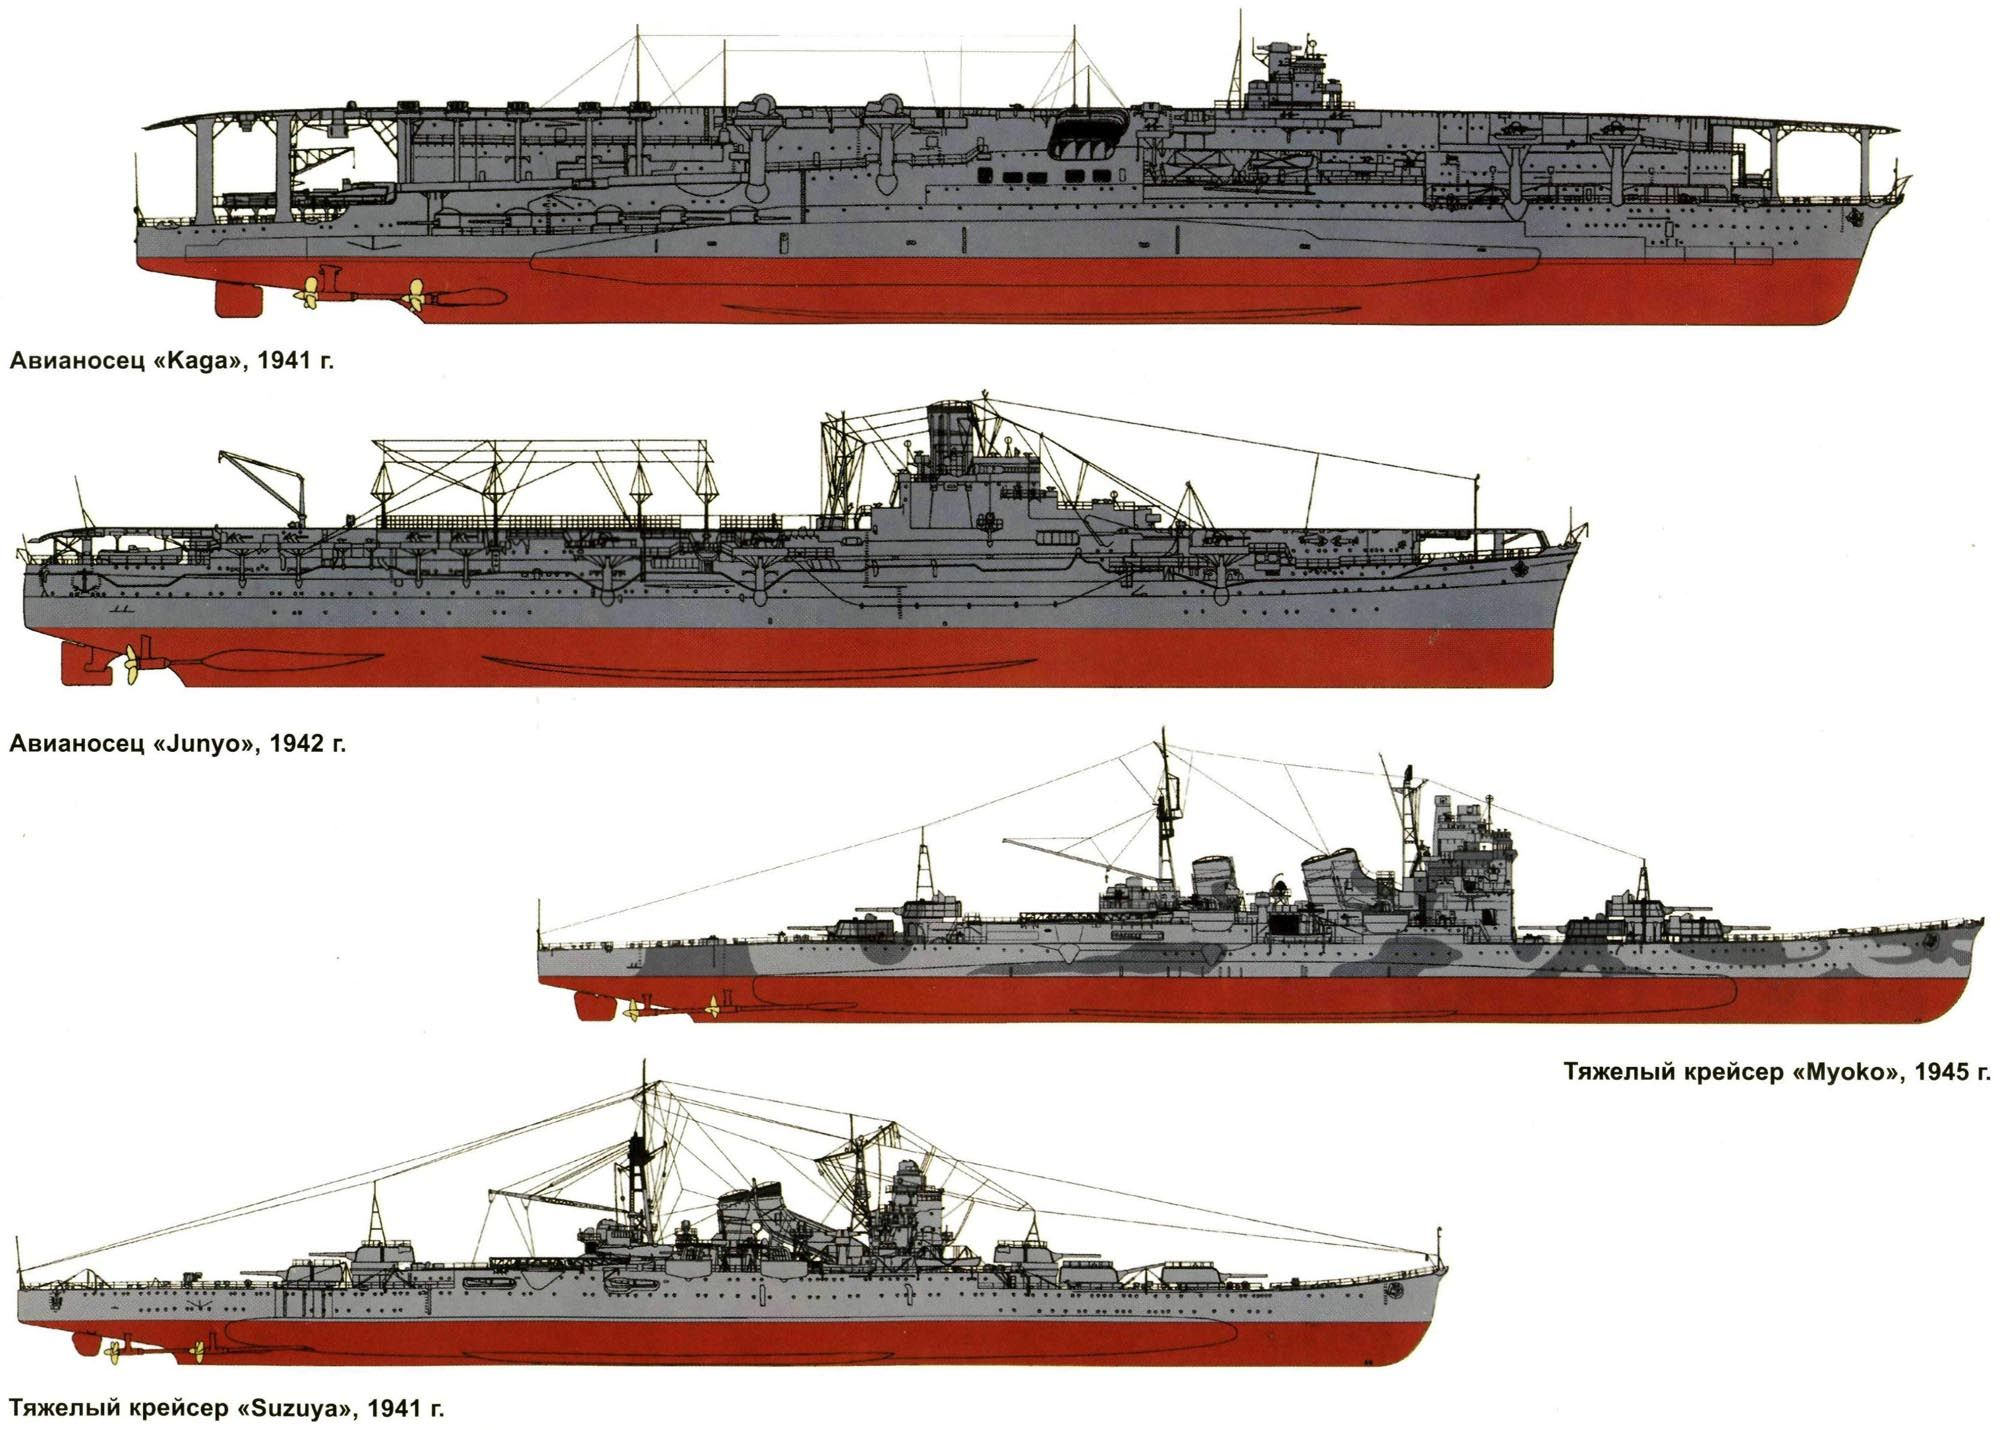 ijn warships comparisons of kaga  cv   junyo  cv   myoko  ca  and suzuya  ca